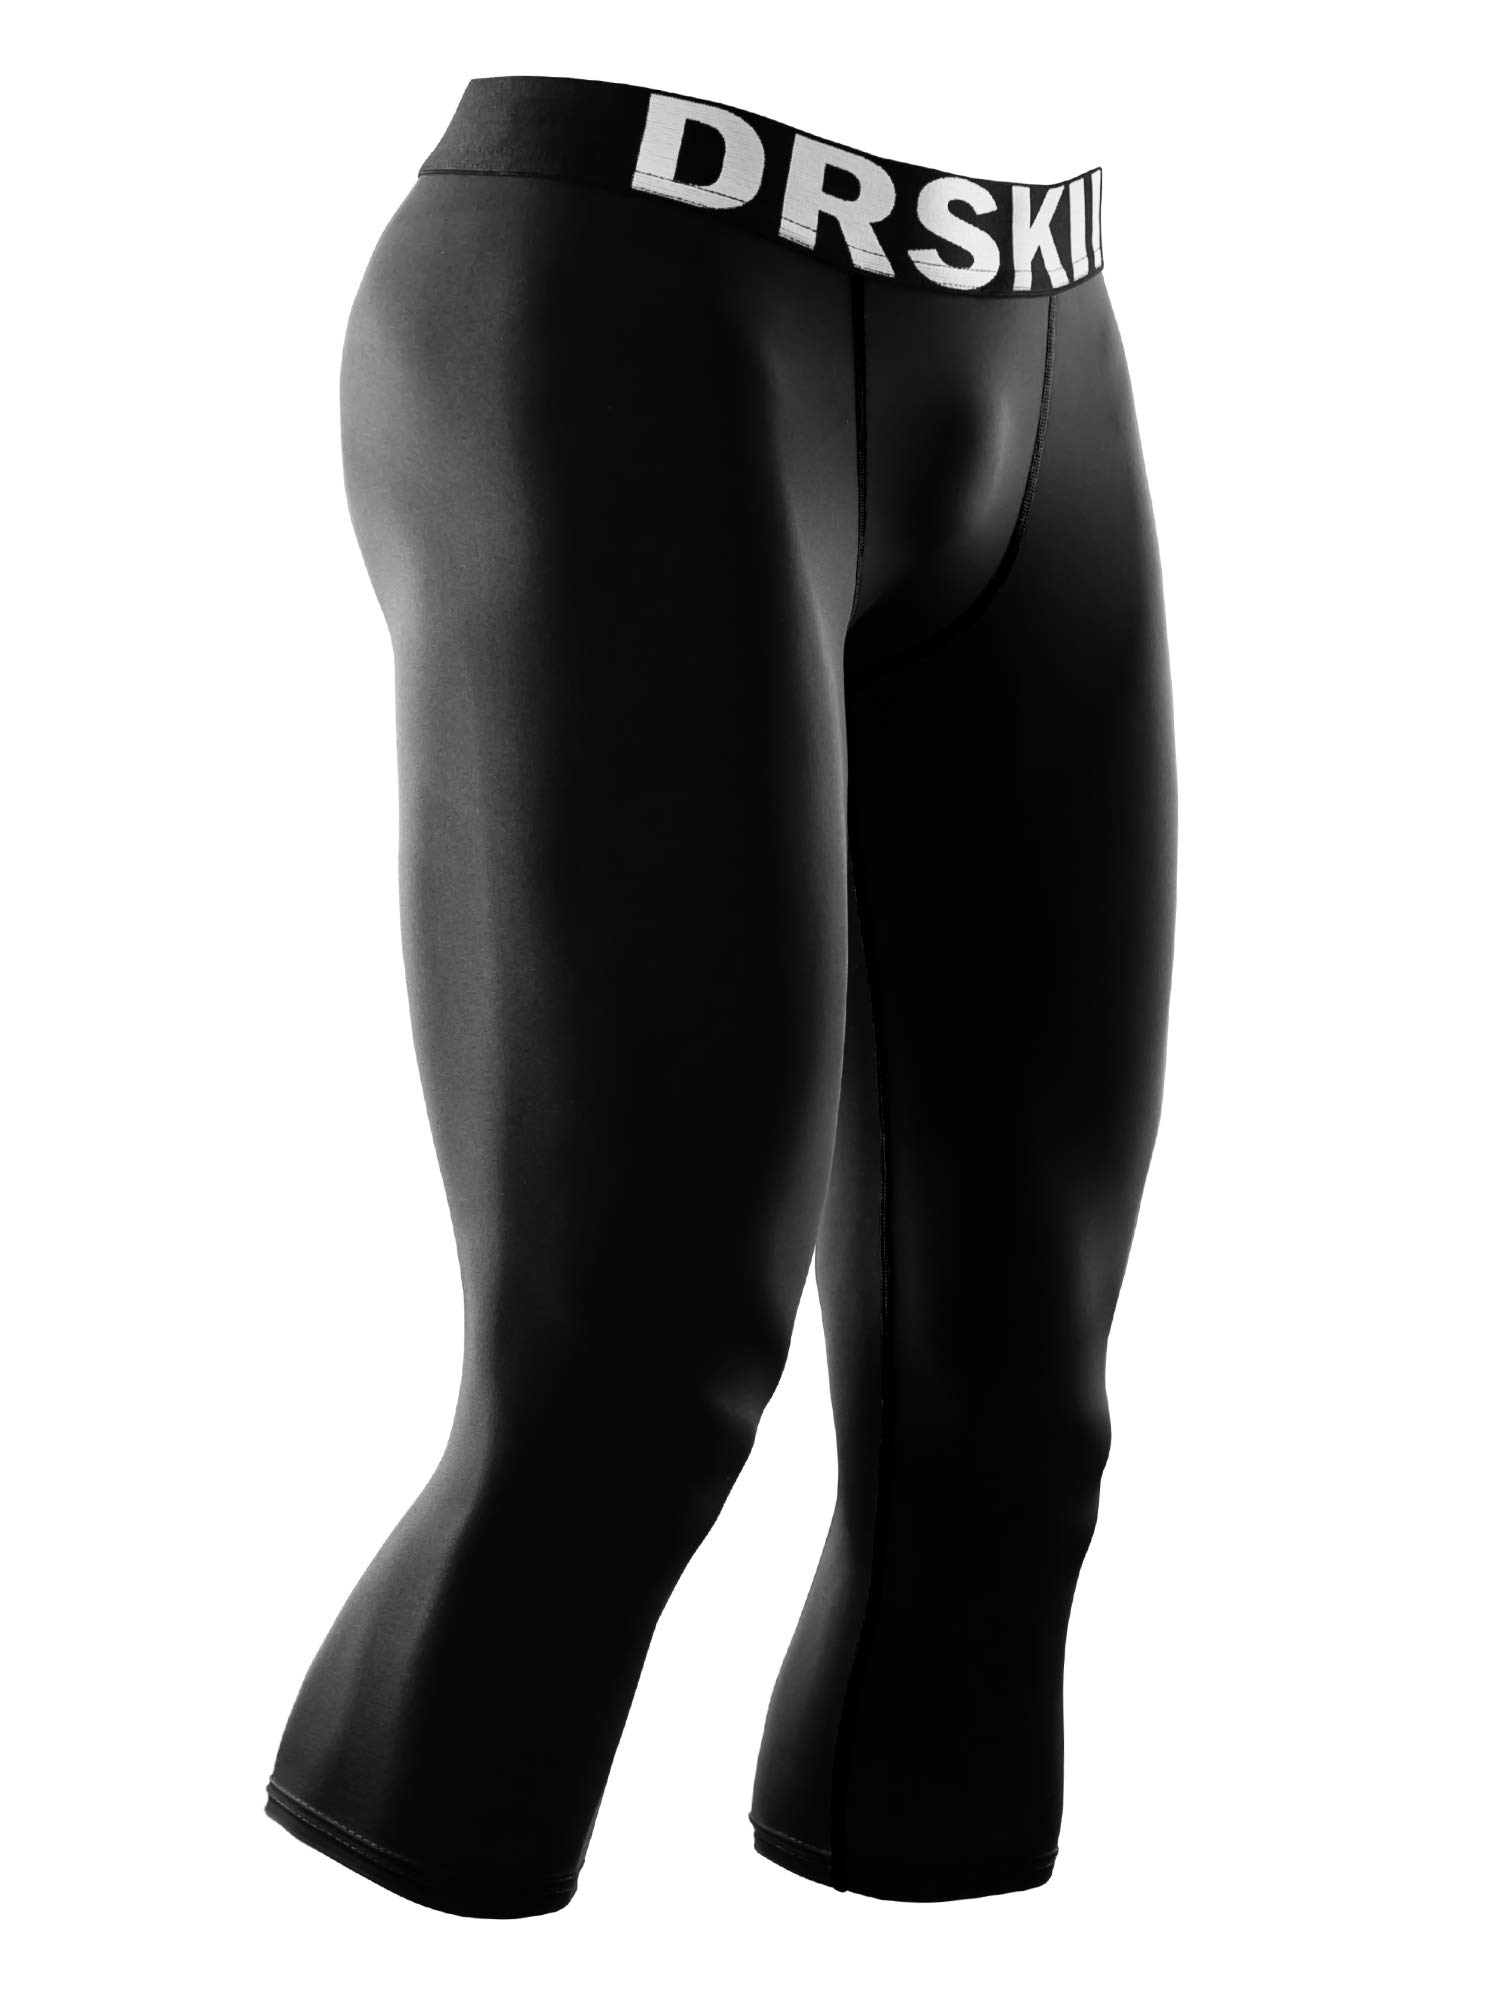 DRSKIN Men's 3/4 Compression Tight Pants Base Under Layer Running Shorts Warm Cool Dry (Line BB801, S) by DRSKIN